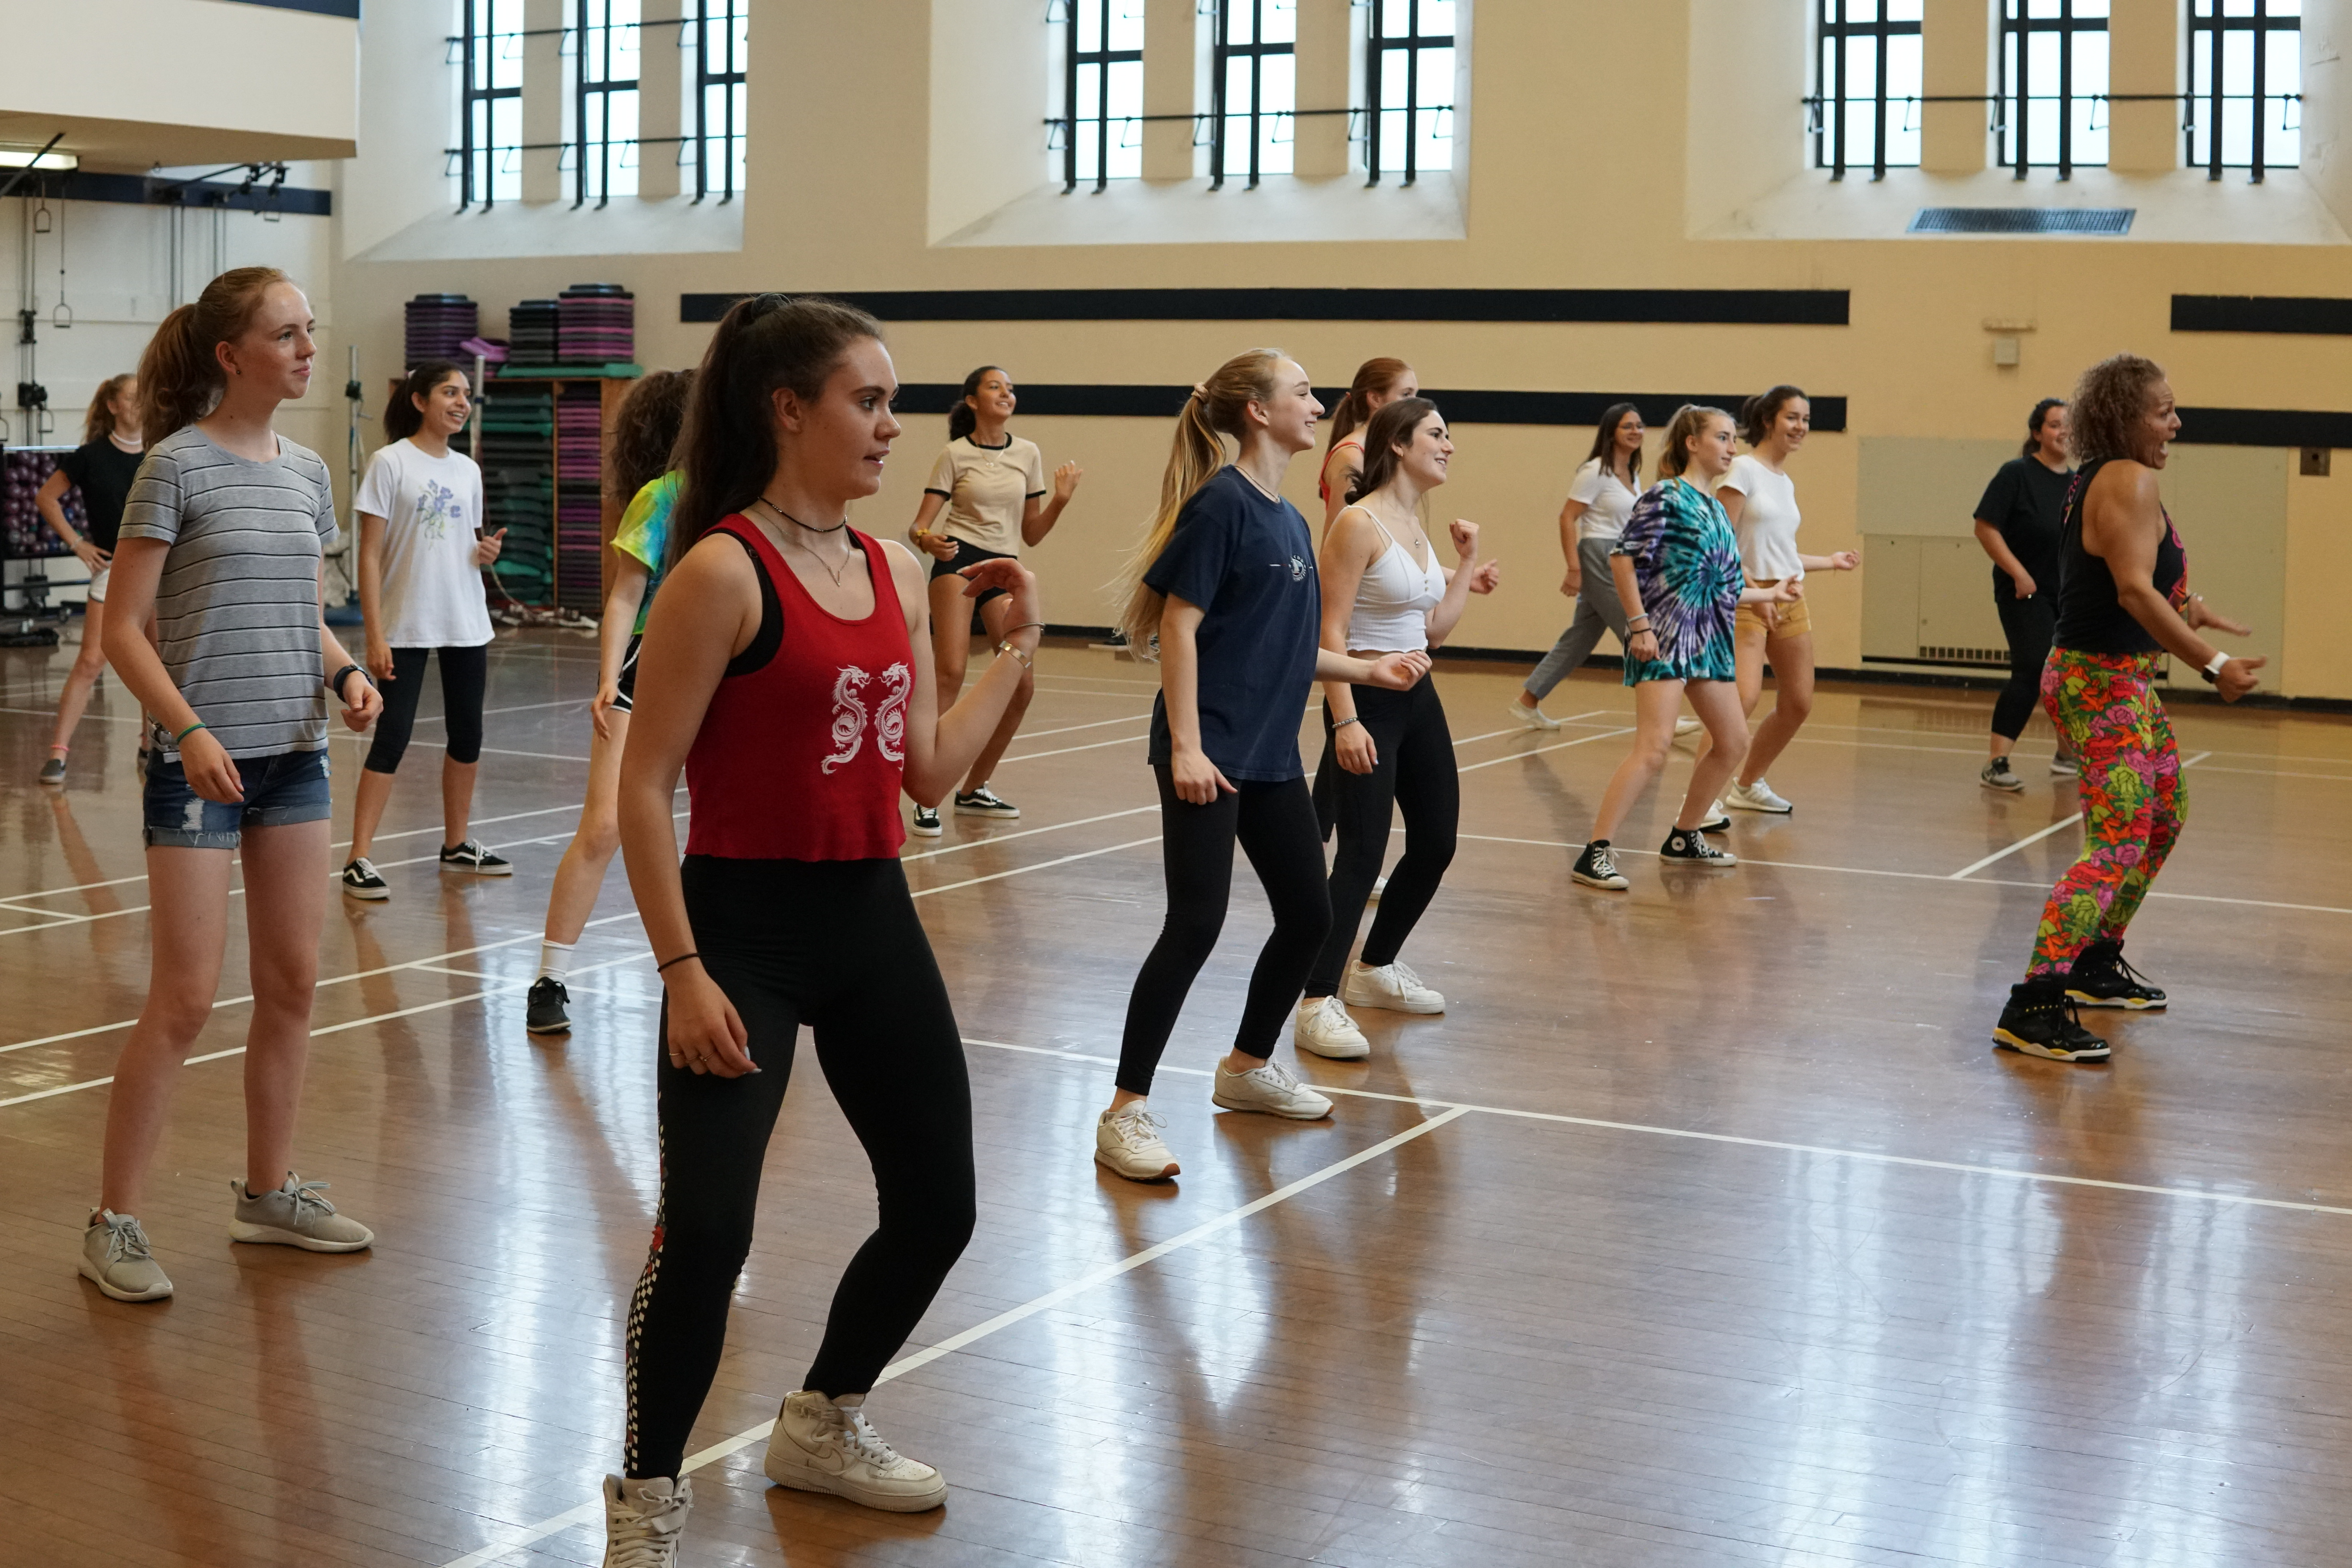 Zumba Workshop : 06-24-2019-S1-Zumba_Workshop-Yale_-_2_of_13.jpg